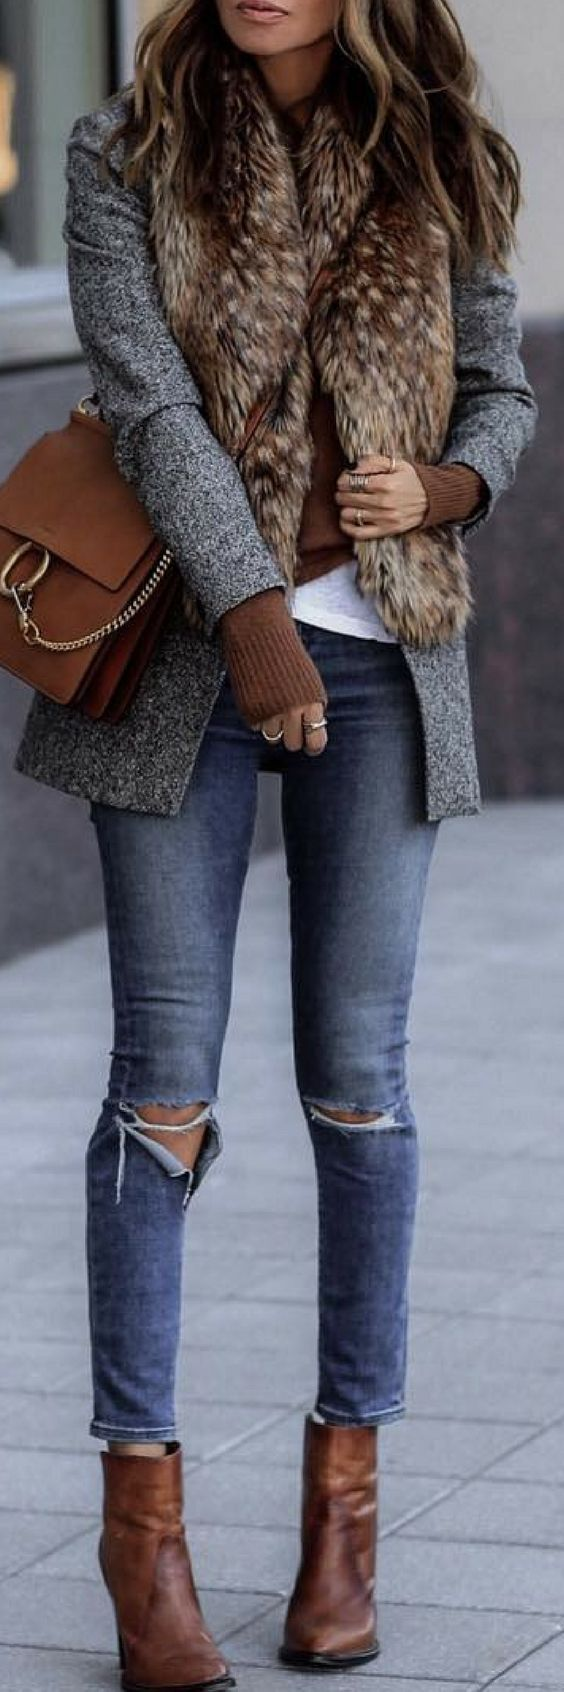 10 Of The Most Remarkable Winter Outfits That Look Terrific https://ecstasymodels.blog/2017/12/13/10-remarkable-winter-outfits-look-terrific/ #winteroutfits